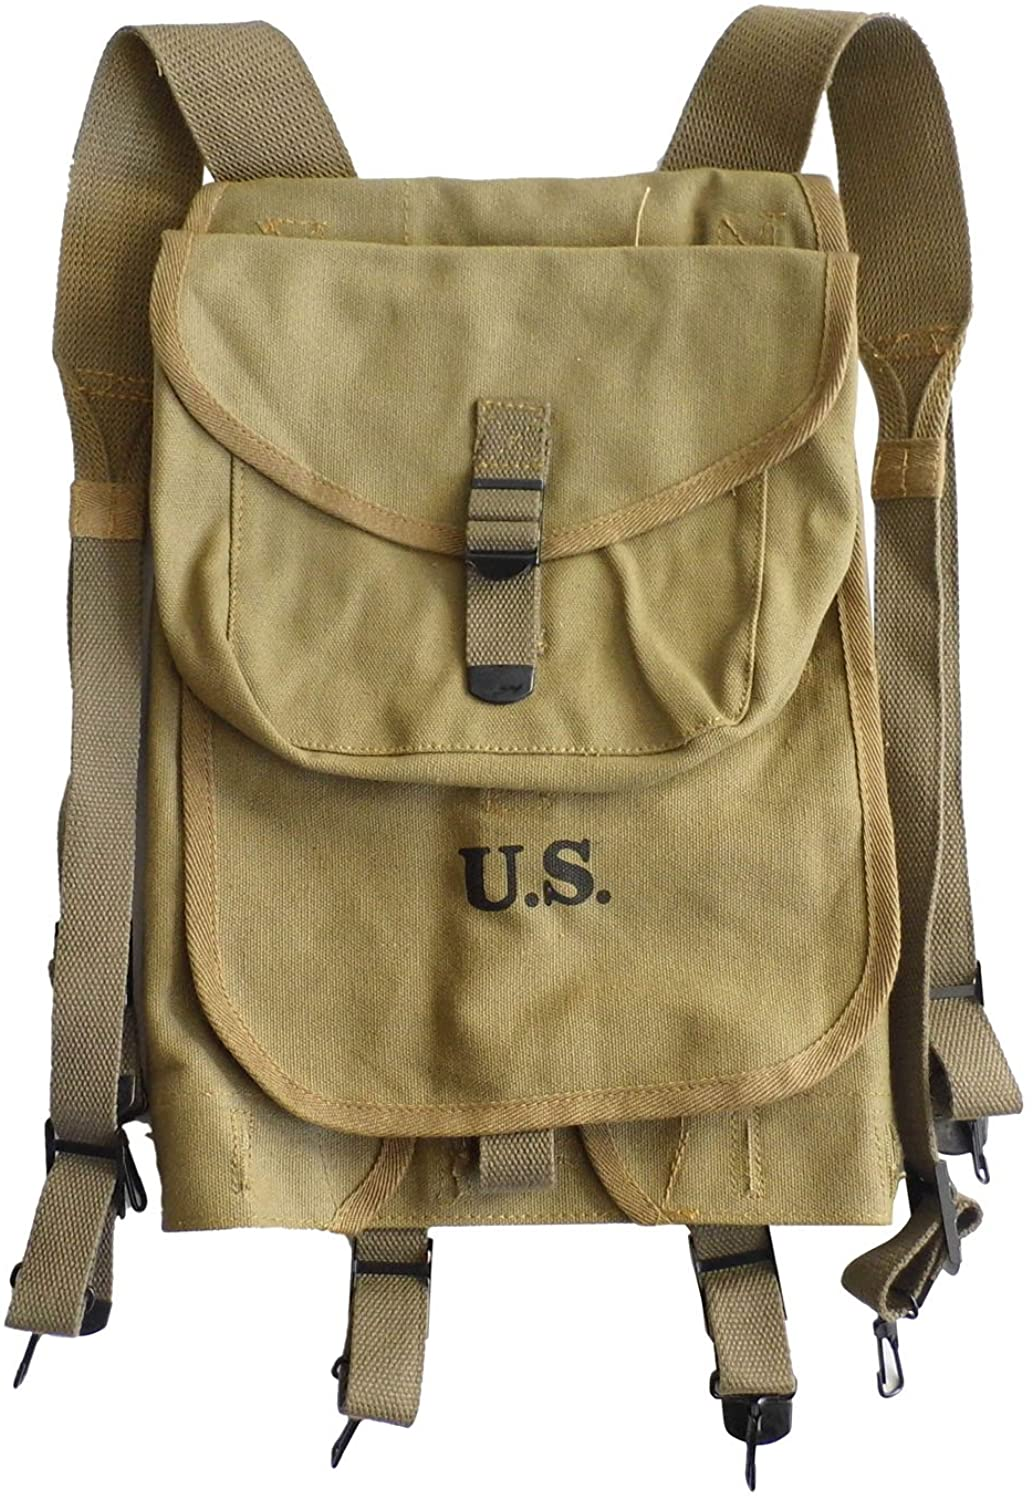 WW2 US Solider M1928 Haversack Khaki Canvas Material Reproduction WWII